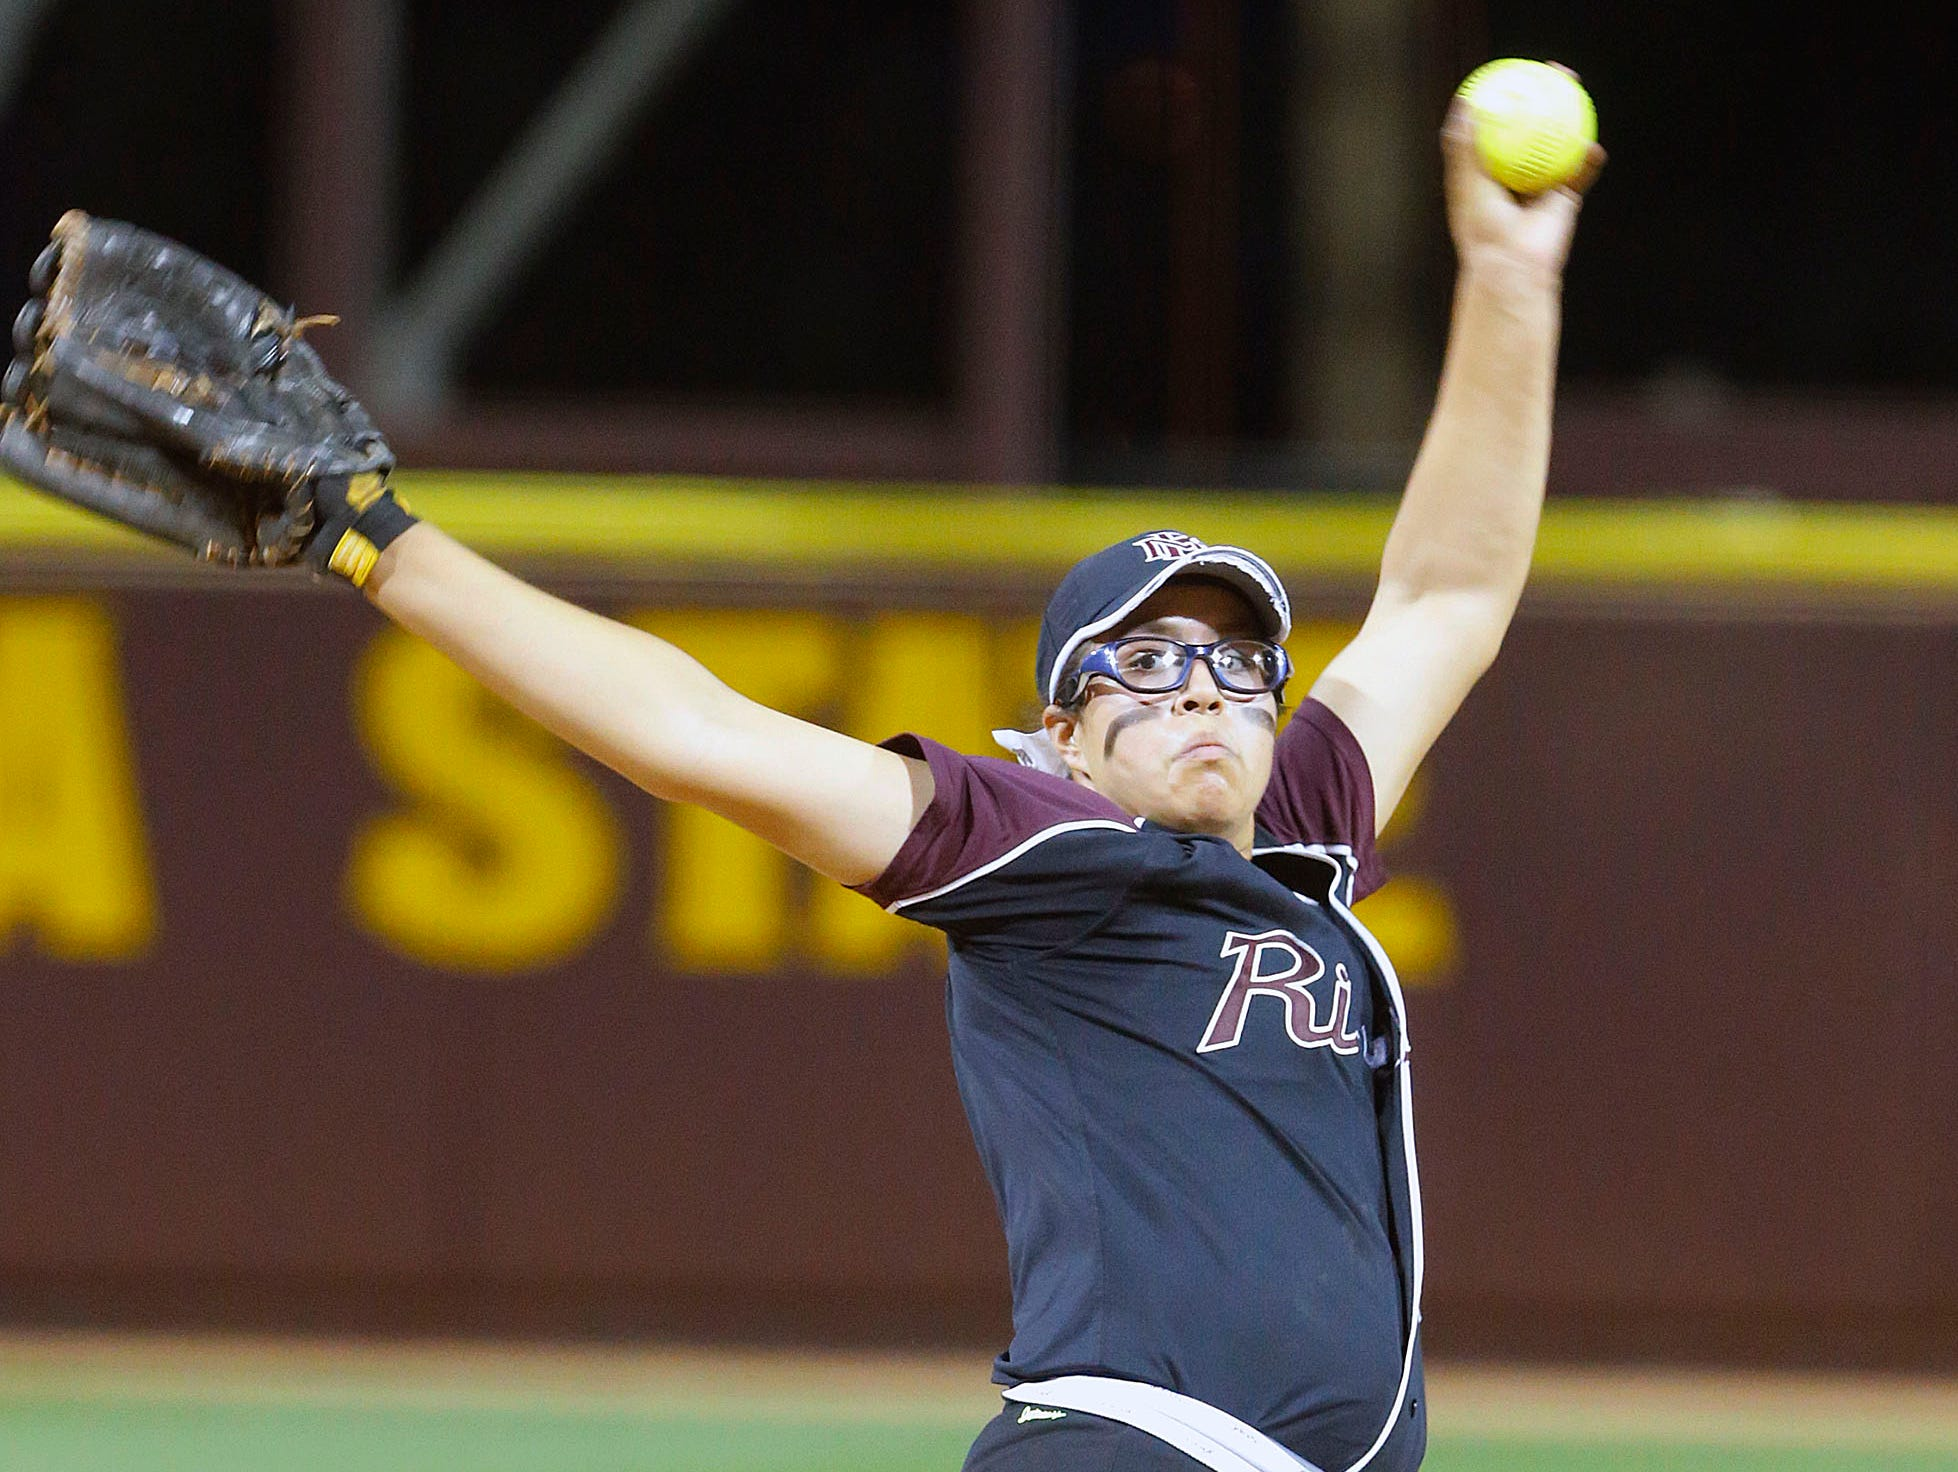 Glendale Mountain Ridge pitcher Giselle Juarez throws against Red Mountain in their 8-1 loss to Mountain Ridge in the Division I state championship Monday, May 19, 2014 in Tempe.